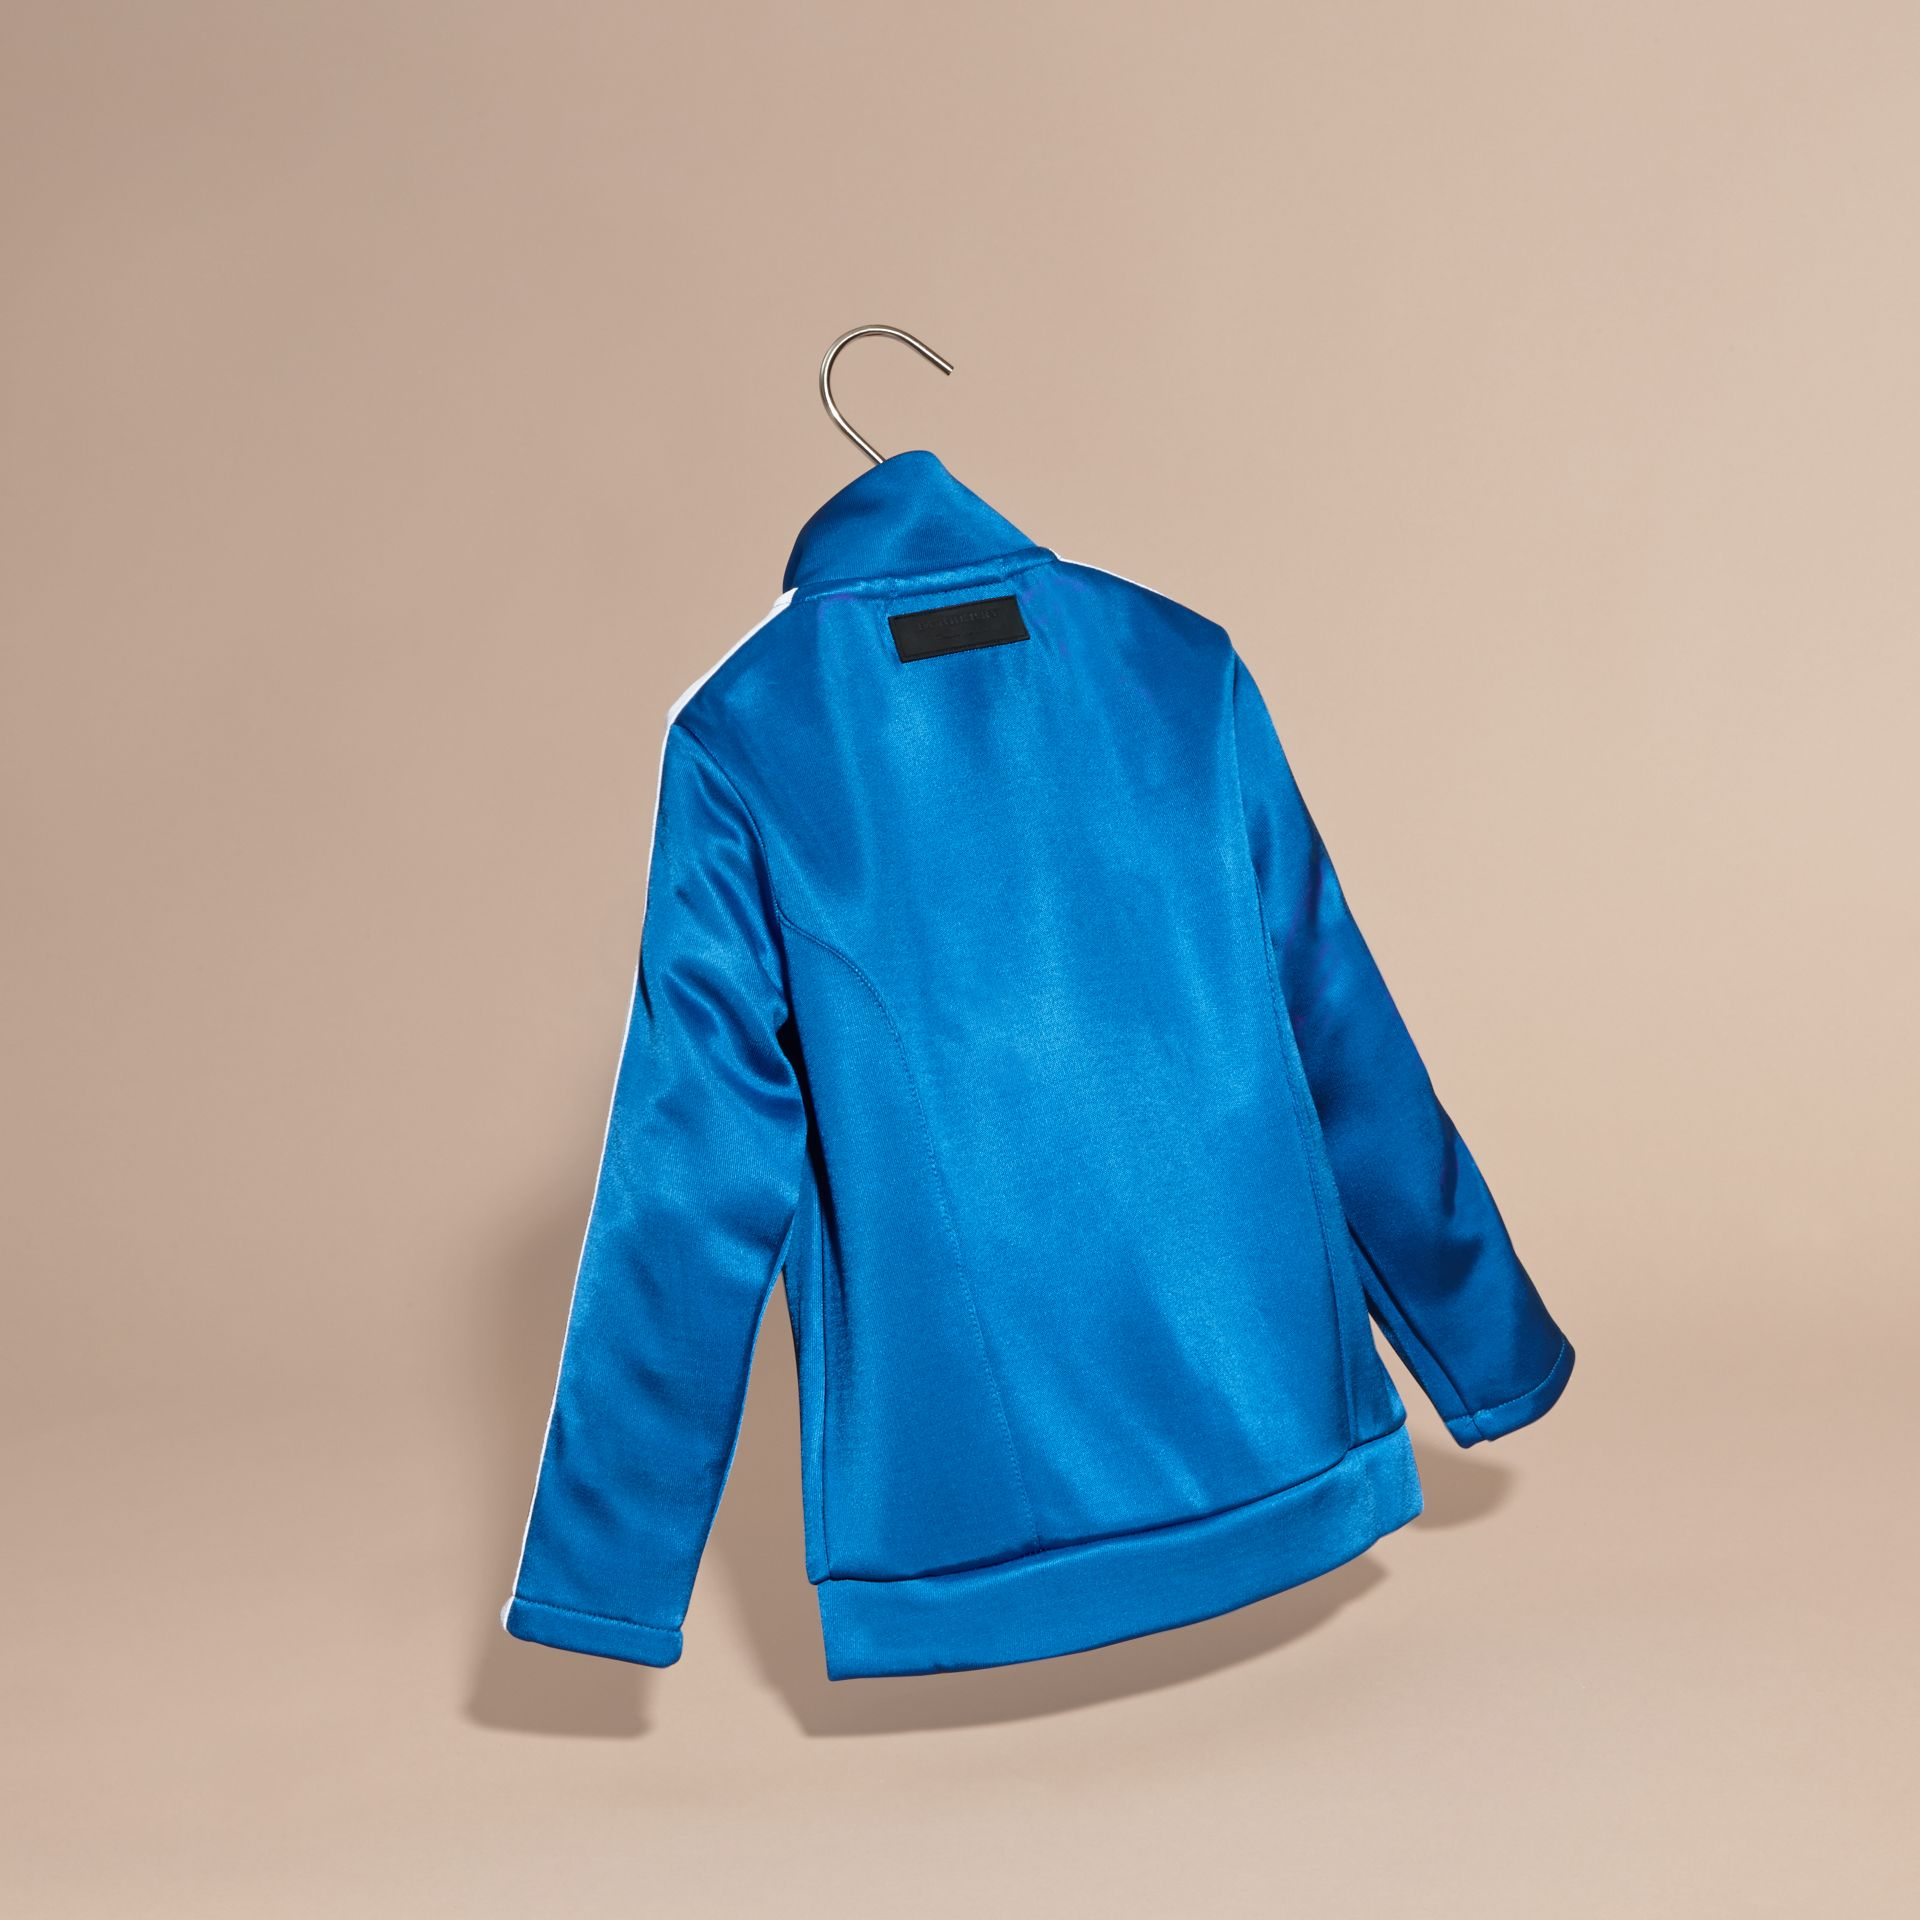 High-shine Technical Track Jacket in Atlantic Blue - gallery image 4